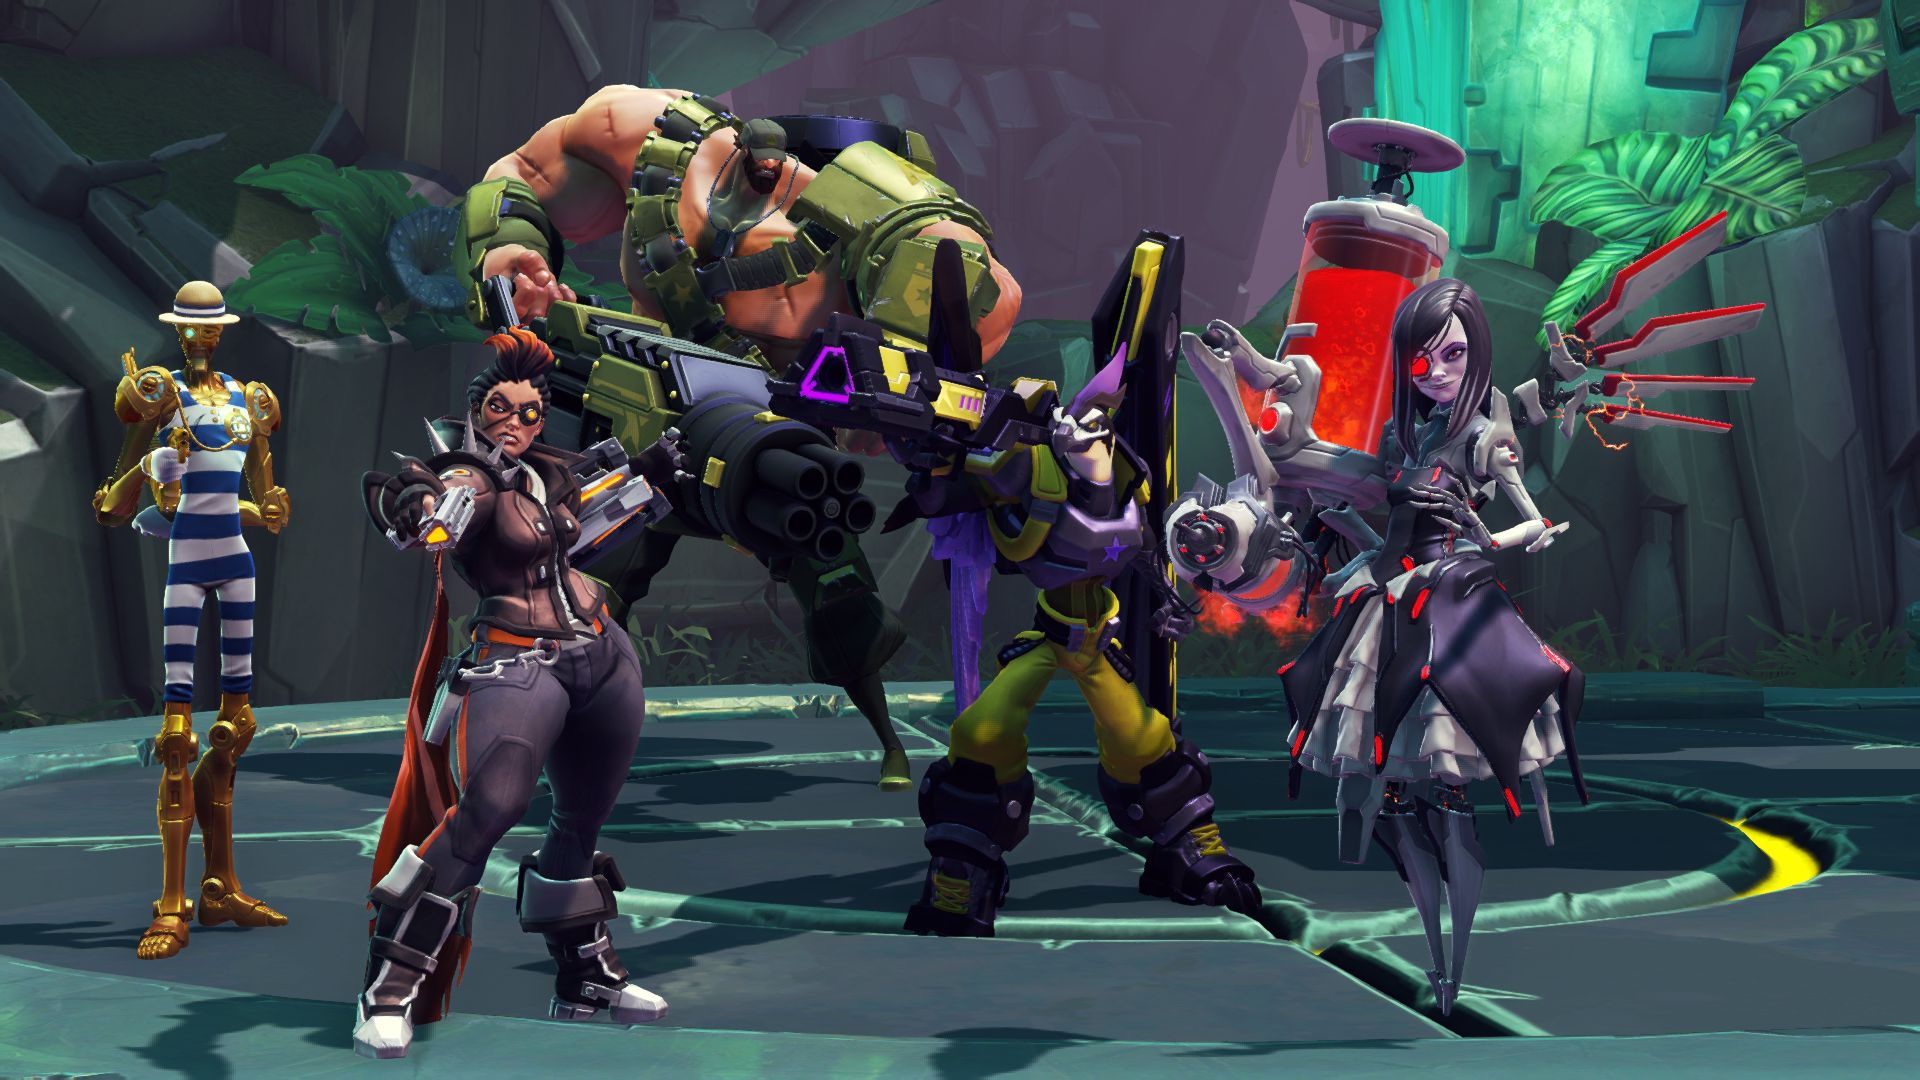 2KGMKT_BATTLEBORN_FREETRIAL_Group-Pose_04_1920x1080